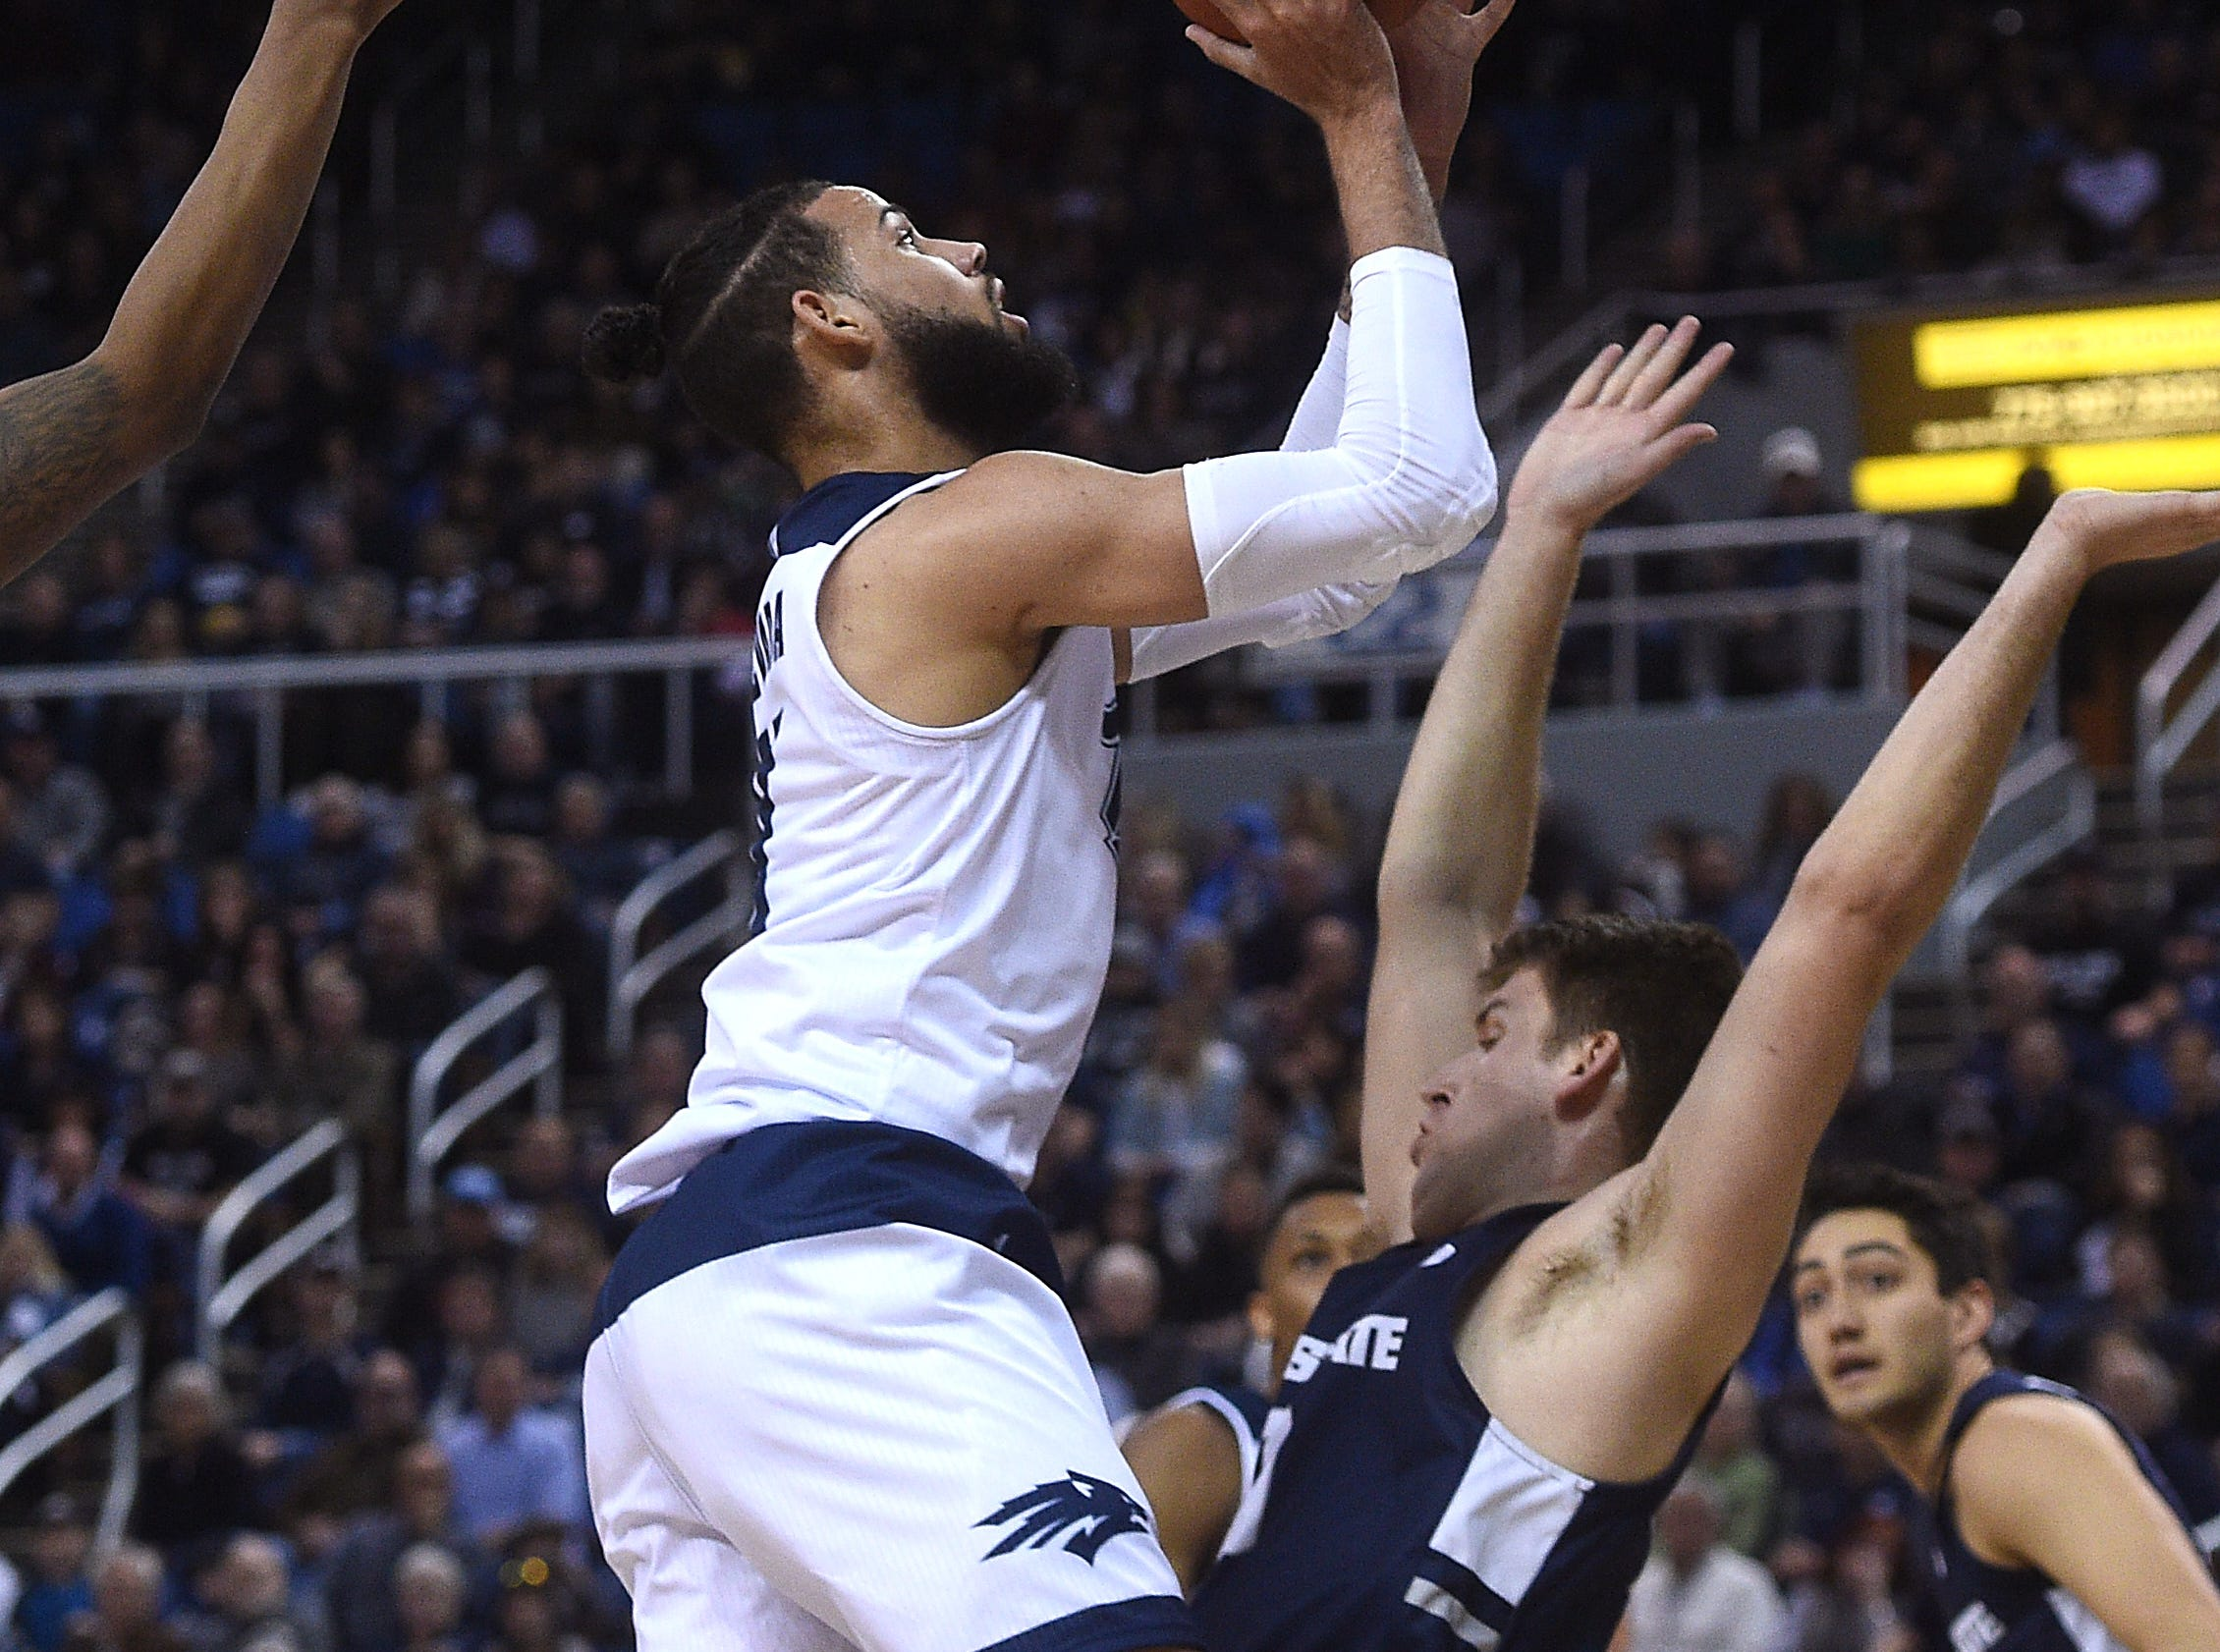 Nevada's Cody Martin (11) shoots while taking on Utah St. during their basketball game at Lawlor Events Center in Reno on Jan. 2, 2019.